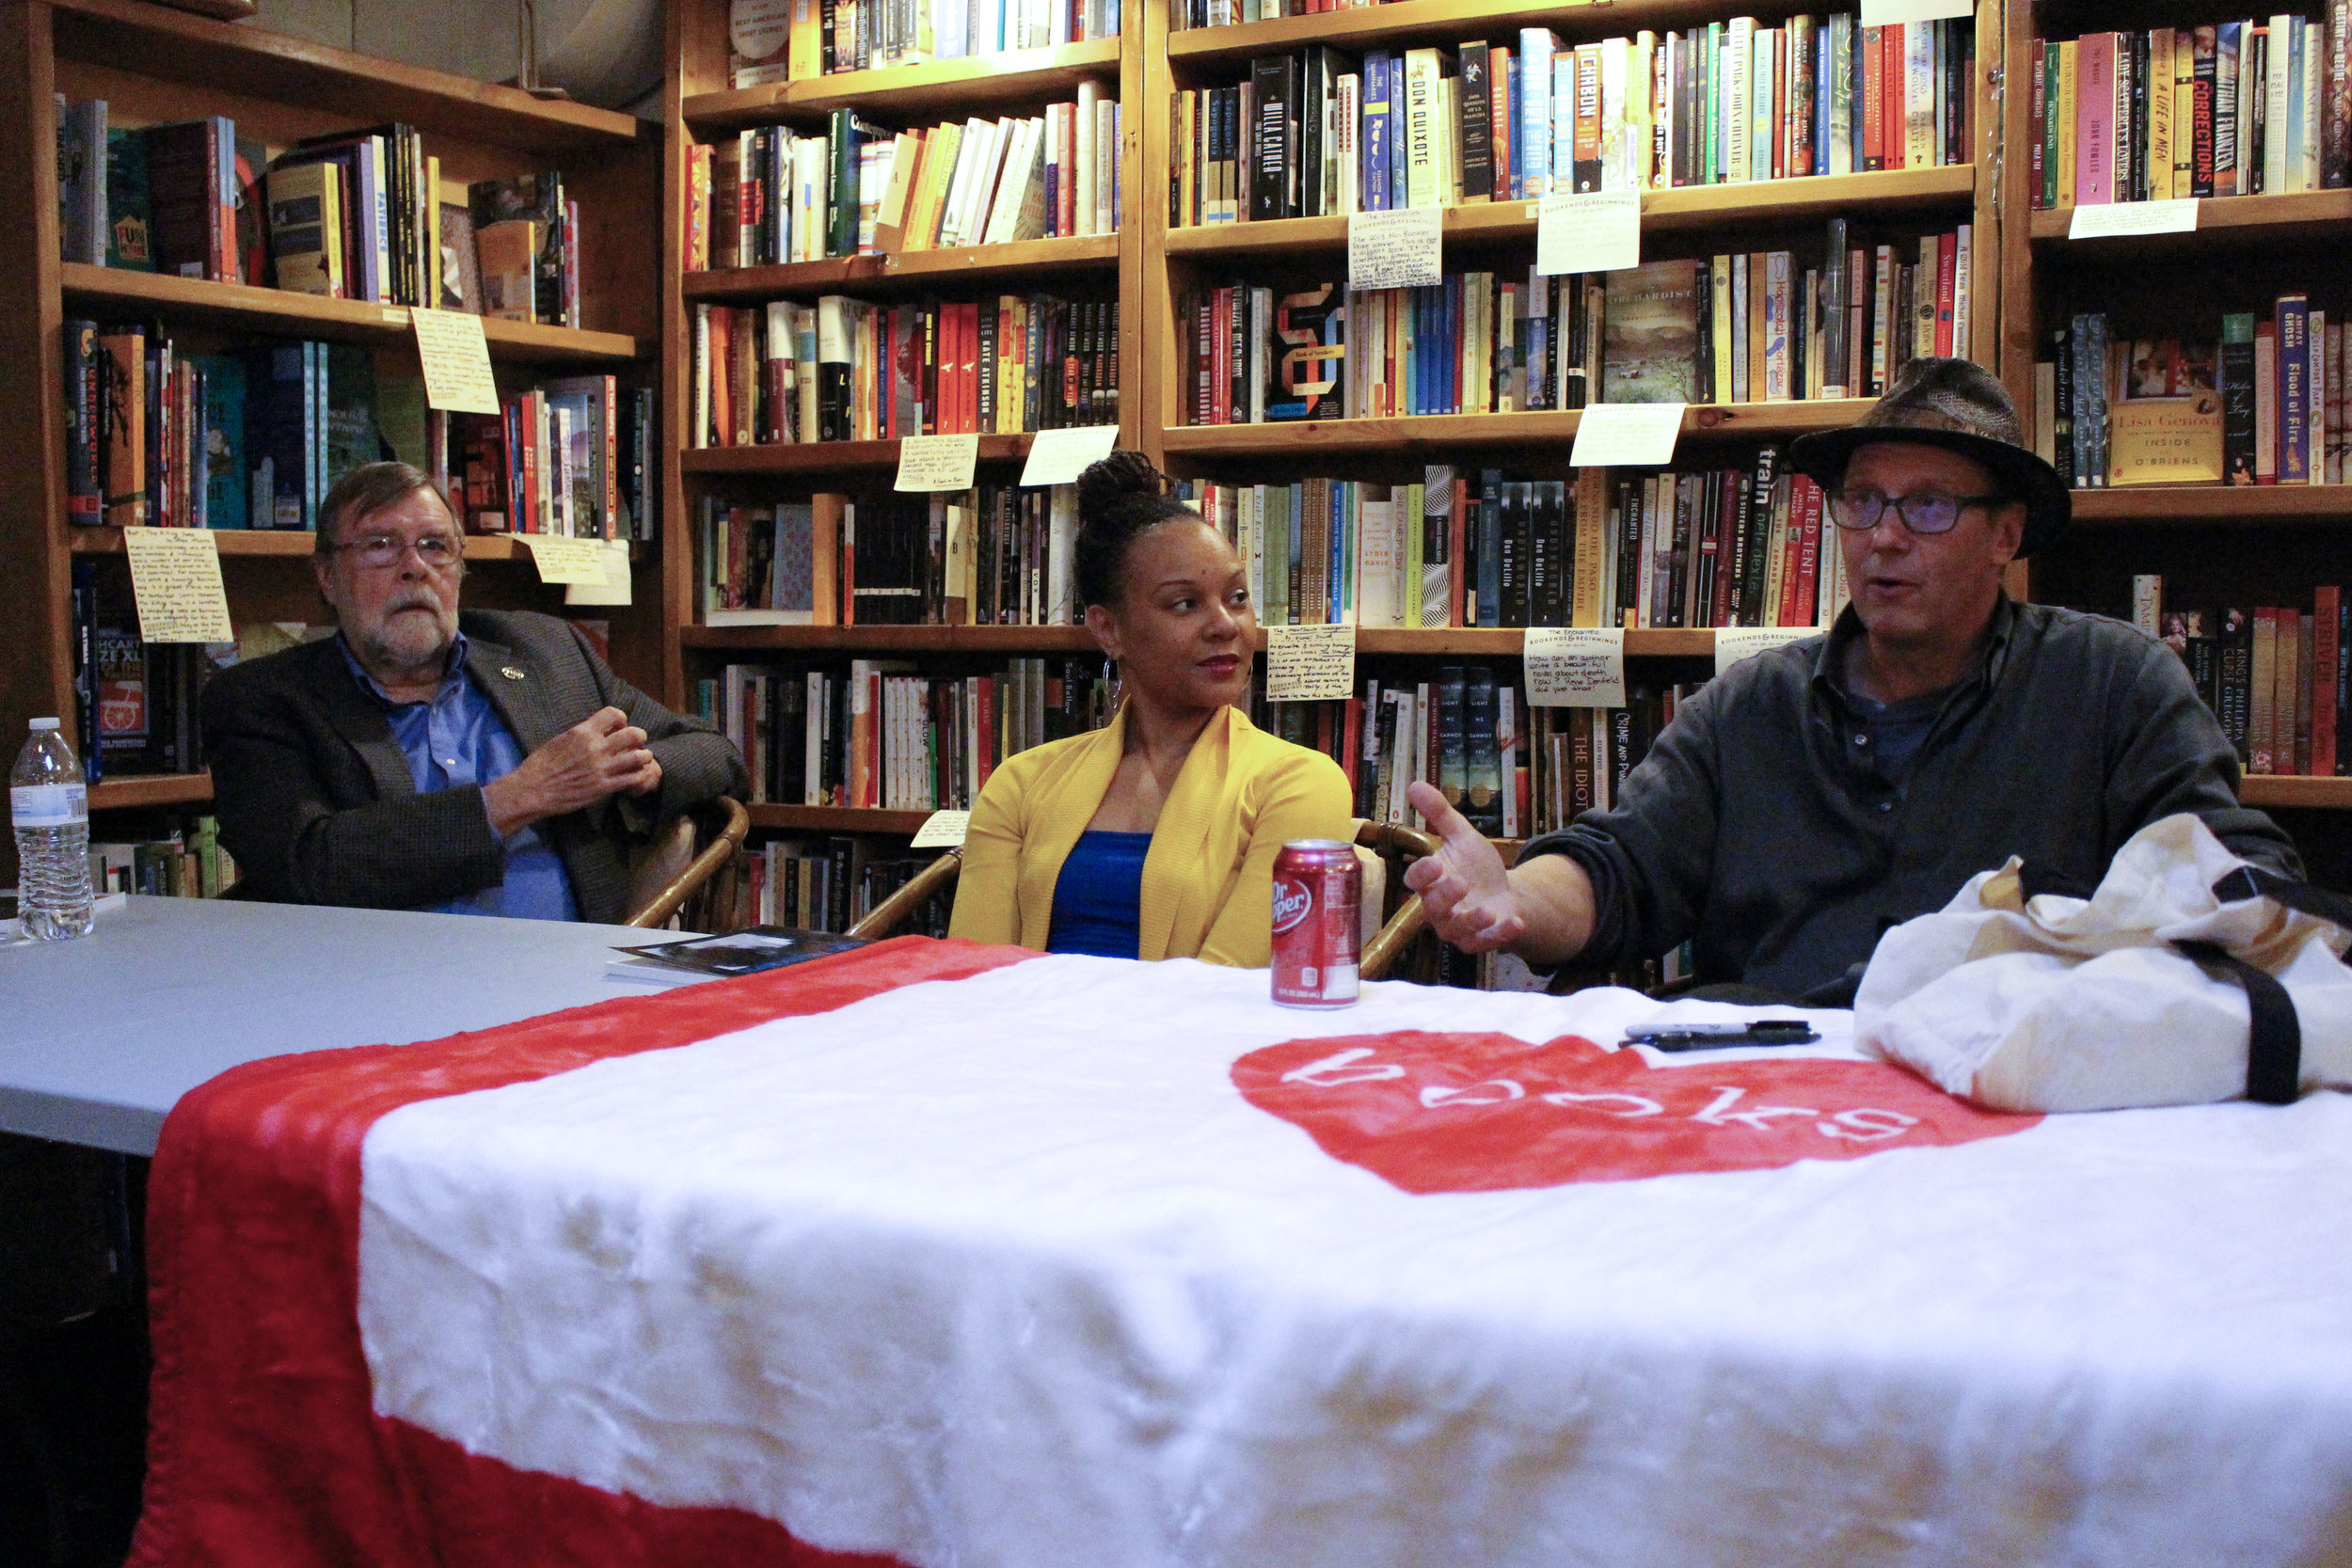 Michael Raleigh, Nambi E. Kelley, and Donald G. Evans at Bookends & Beginnings.